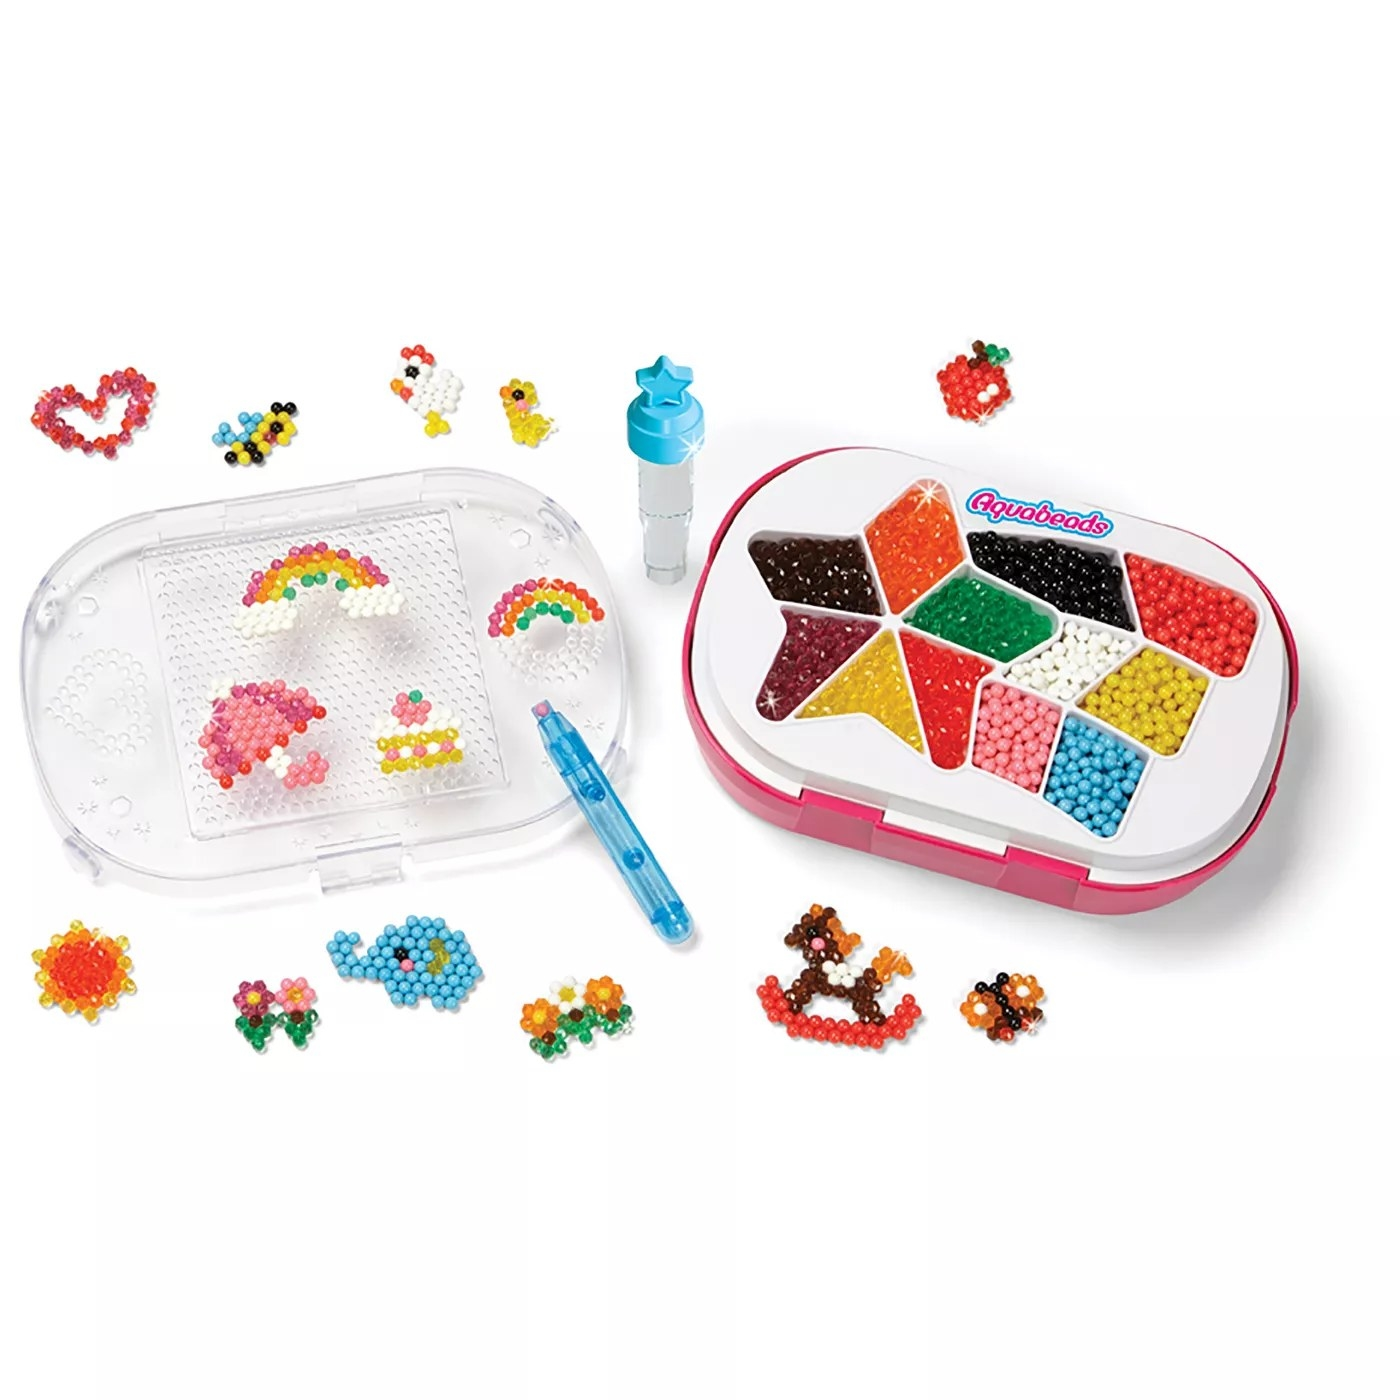 The Aquabeads kit